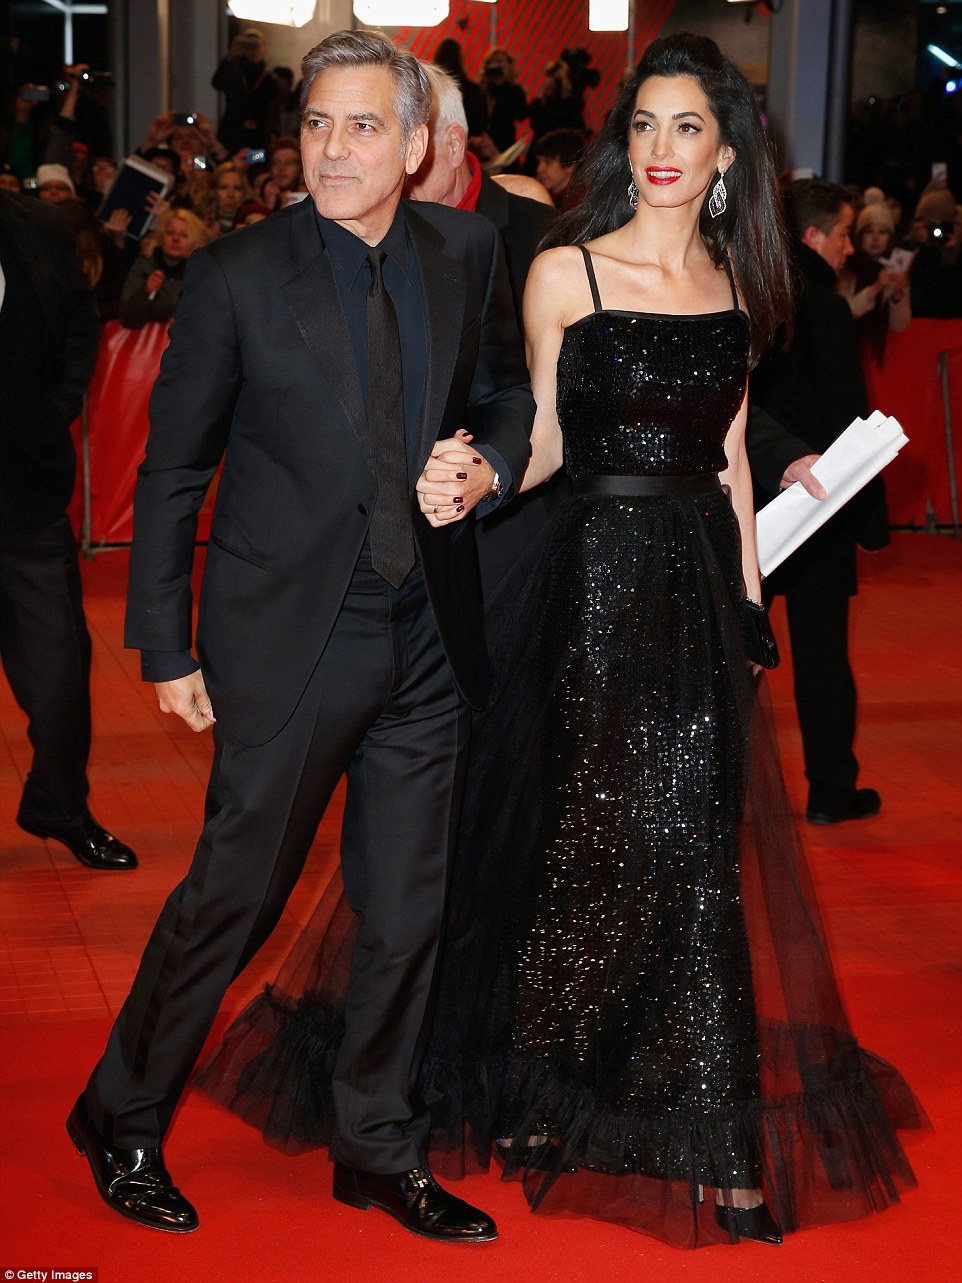 George Clooney and Amal on the red carpet for Hail Caesar Berlin Film Fest premiere 311A062C00000578-3442938-image-m-76_1455218104732